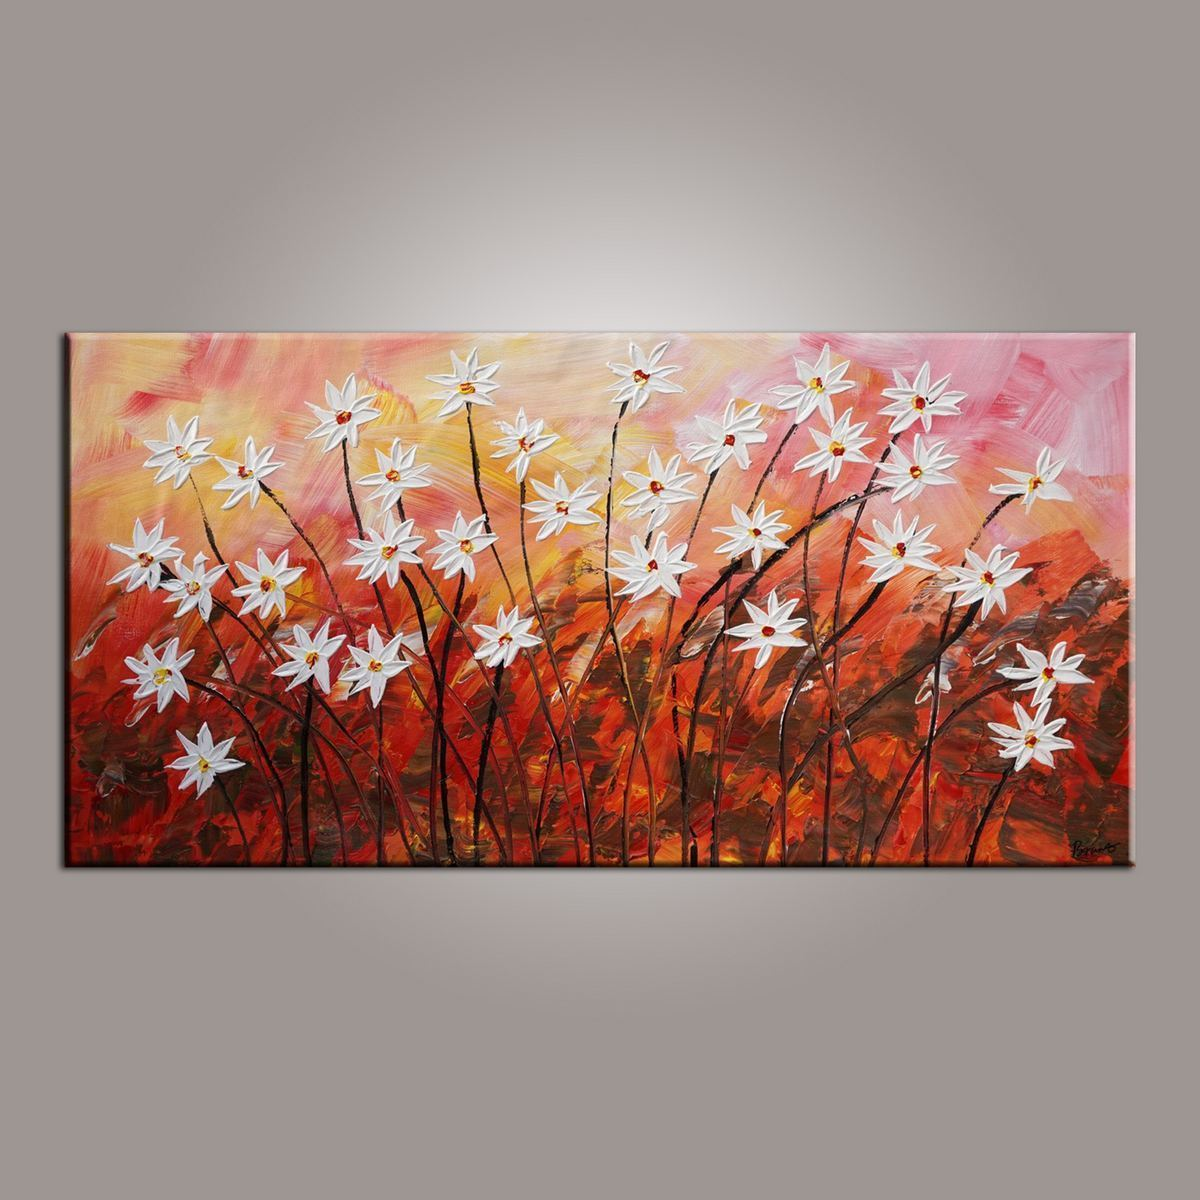 Wall Painting, Canvas Wall Art, Flower Art, Abstract Art Painting, Acrylic Painting, Bedroom Wall Art, Canvas Art, Modern Art, Contemporary Art-Grace Painting Crafts